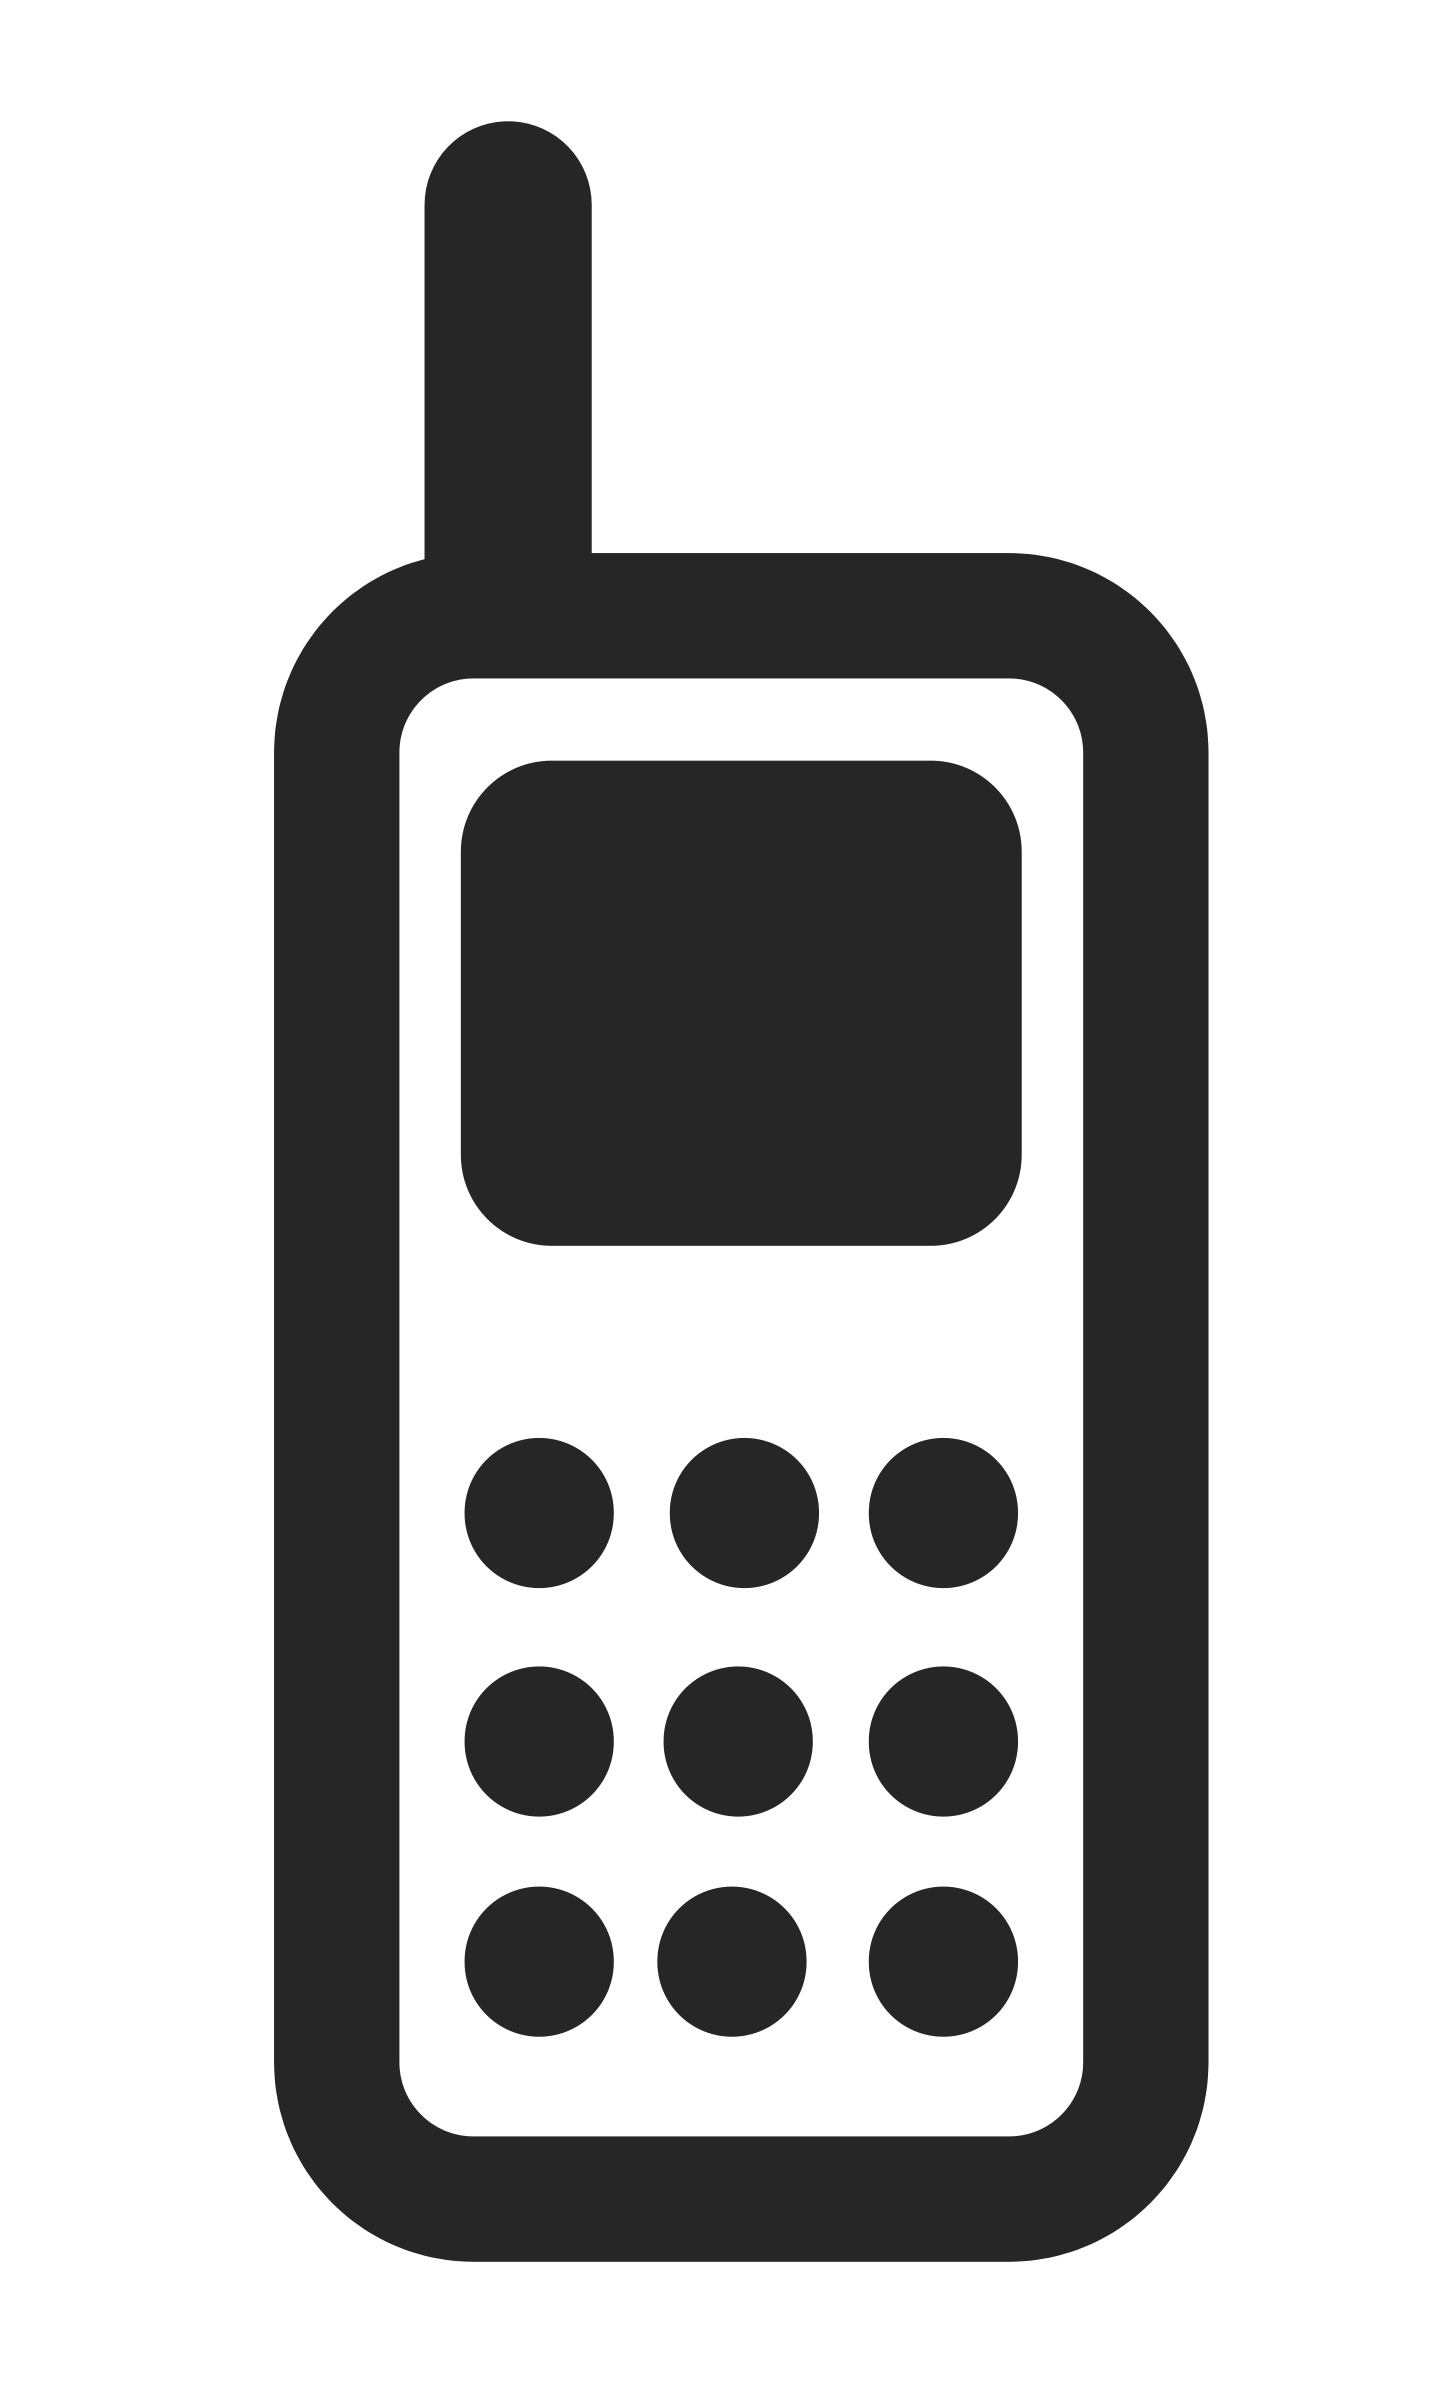 clipart mobile phone - photo #37